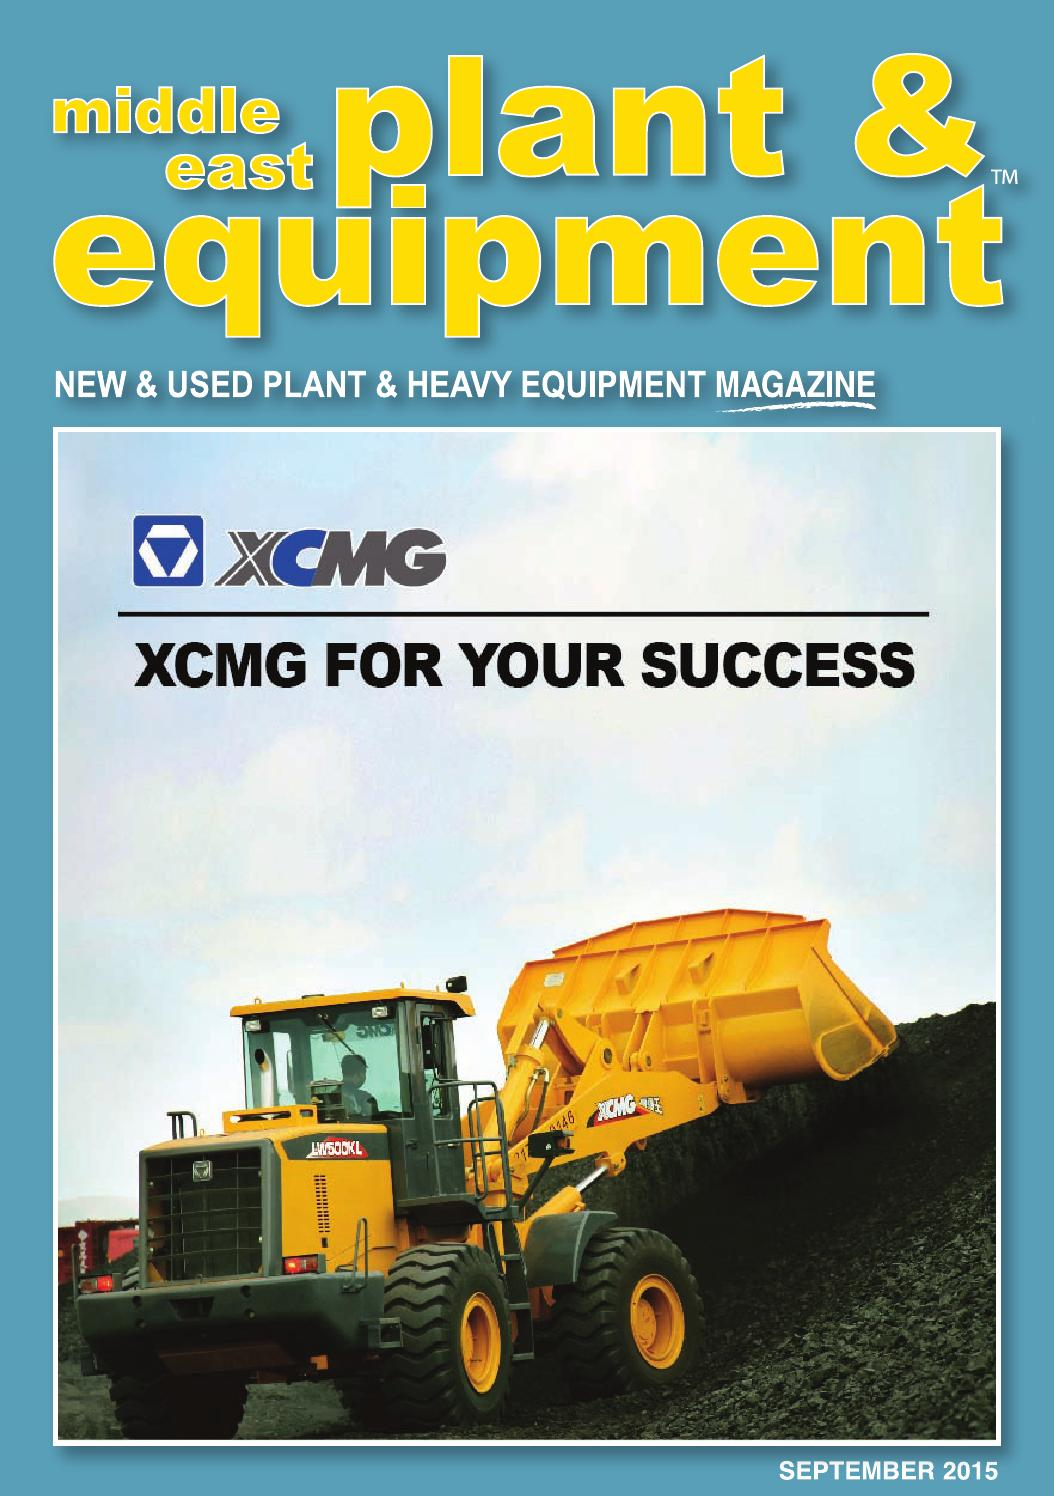 Makemodel SEOLHWA  Middle East Plant & Equipment - September 2015 Edition by Middle East Plant  & Equipment - issuu